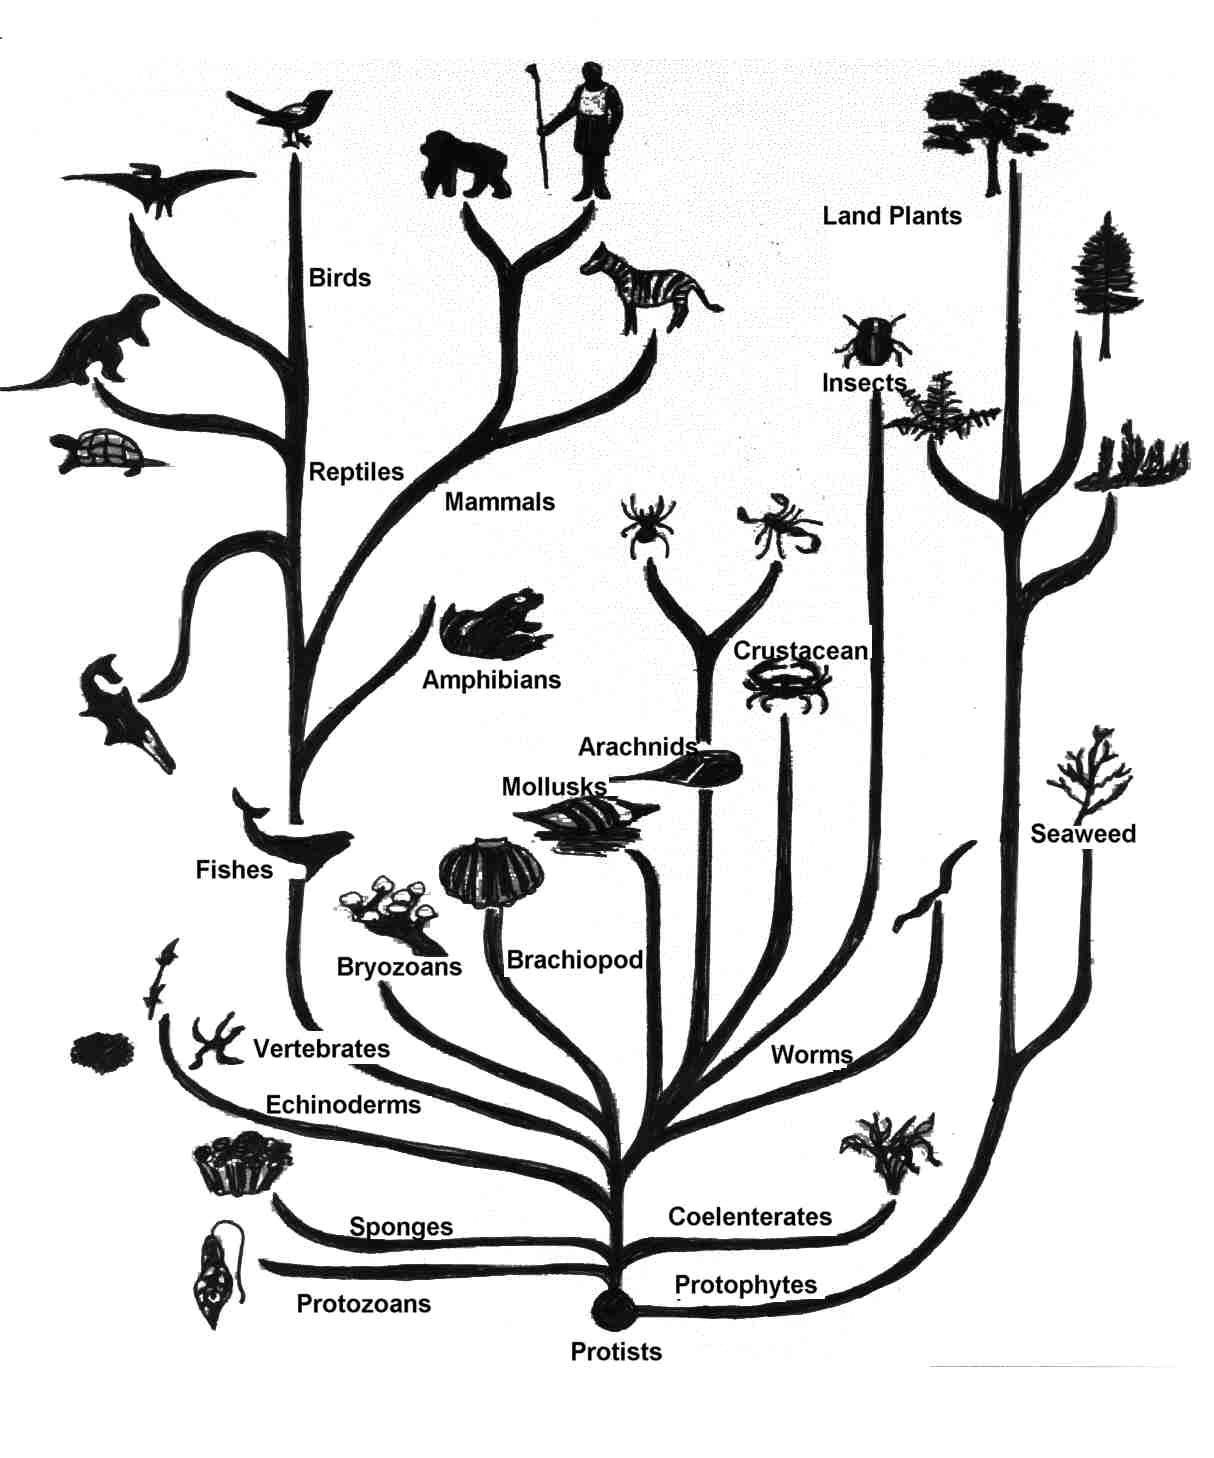 Chapter 26 Phylogeny And The Tree Of Life